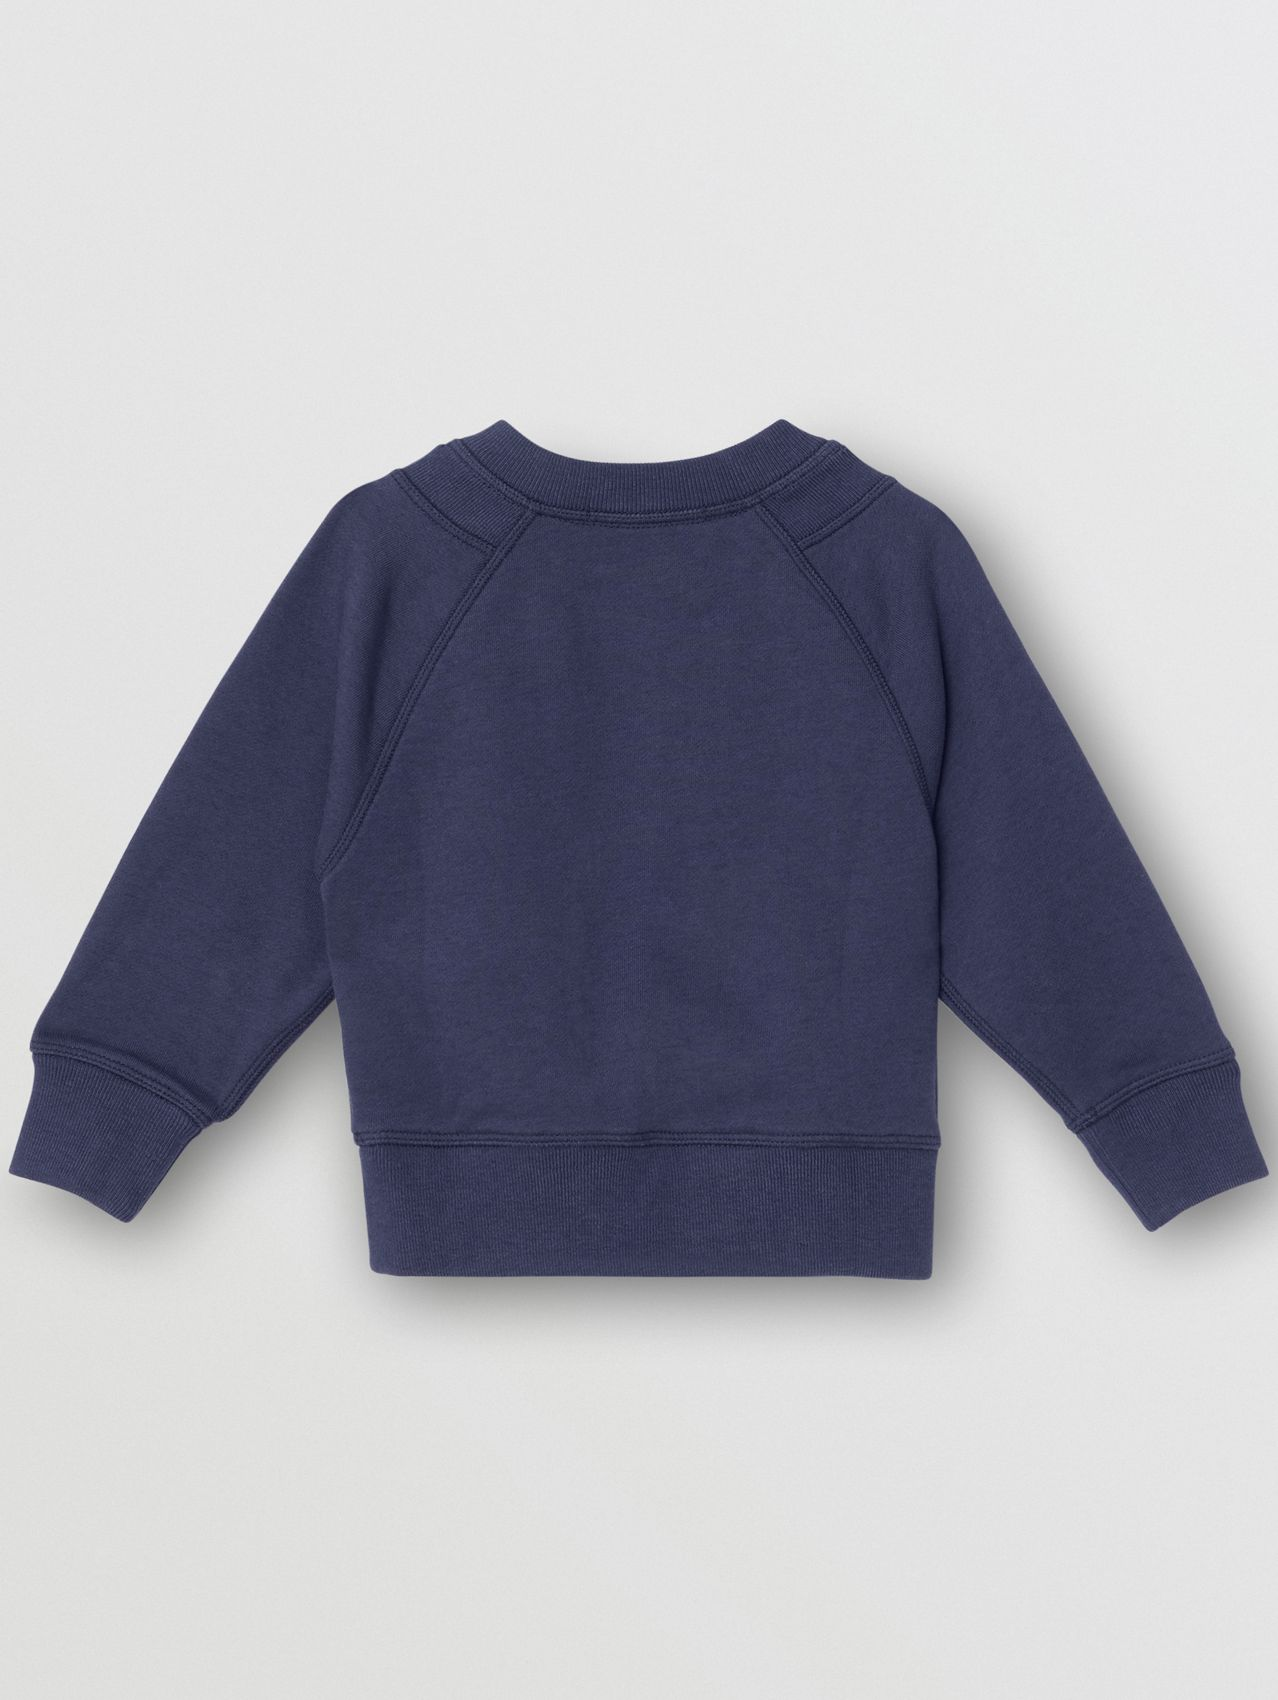 Kingdom Motif Cotton Sweatshirt (Slate Blue Melange)